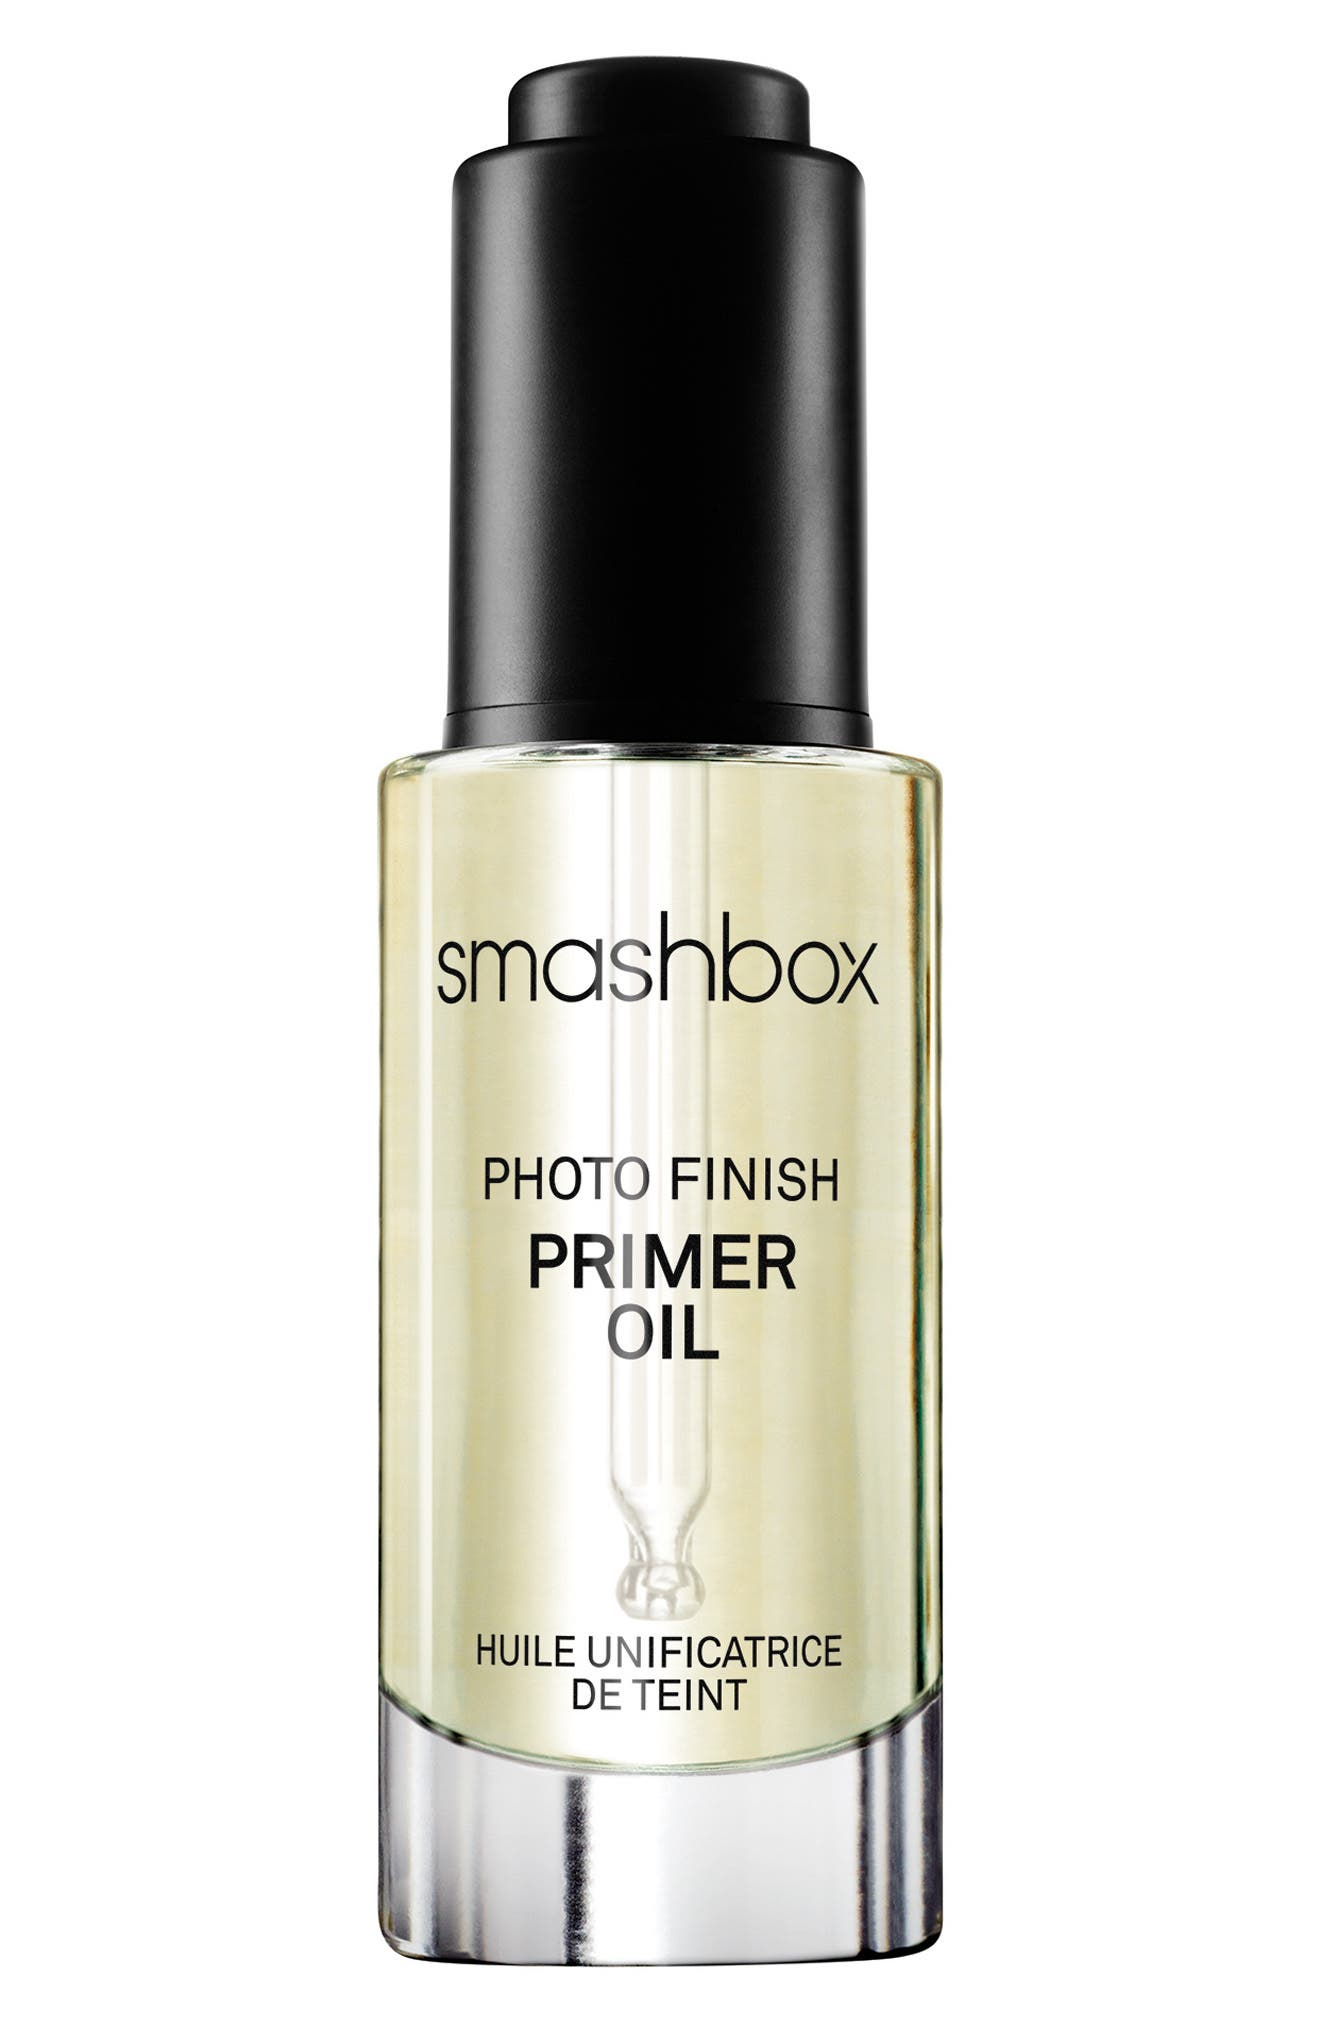 Smashbox Photo Finish Primer Oil